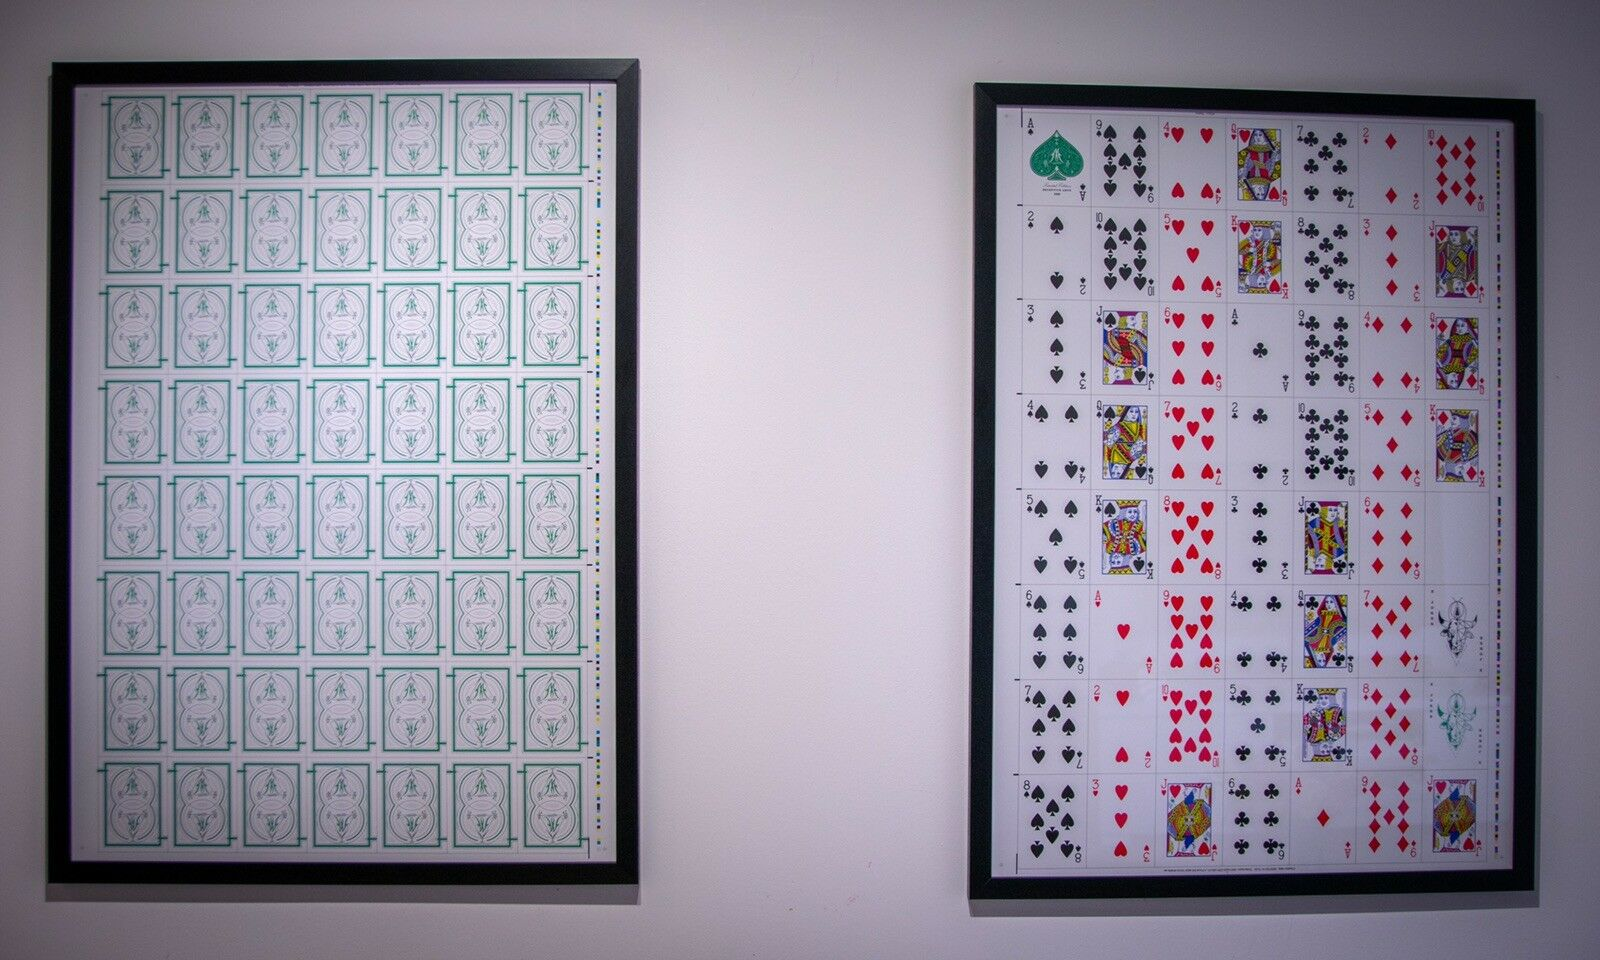 Uncut Playing Card Sheet By Deceptive Arts Limited Edition Without Frame